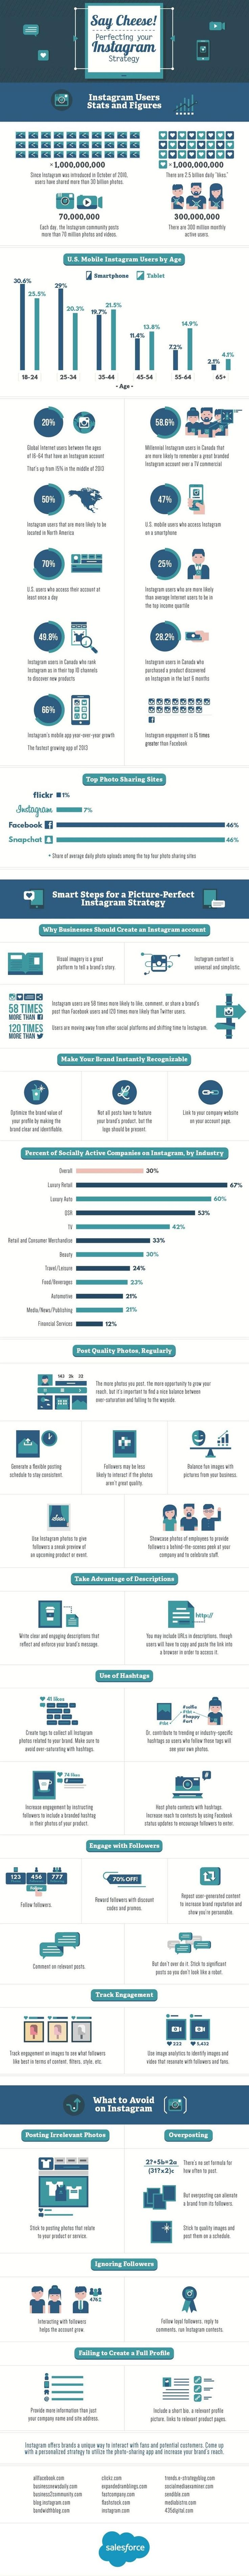 #SocialMedia - Quick Tips for Perfecting Your #Instagram Strategy [Infographic] : MarketingProfs Article